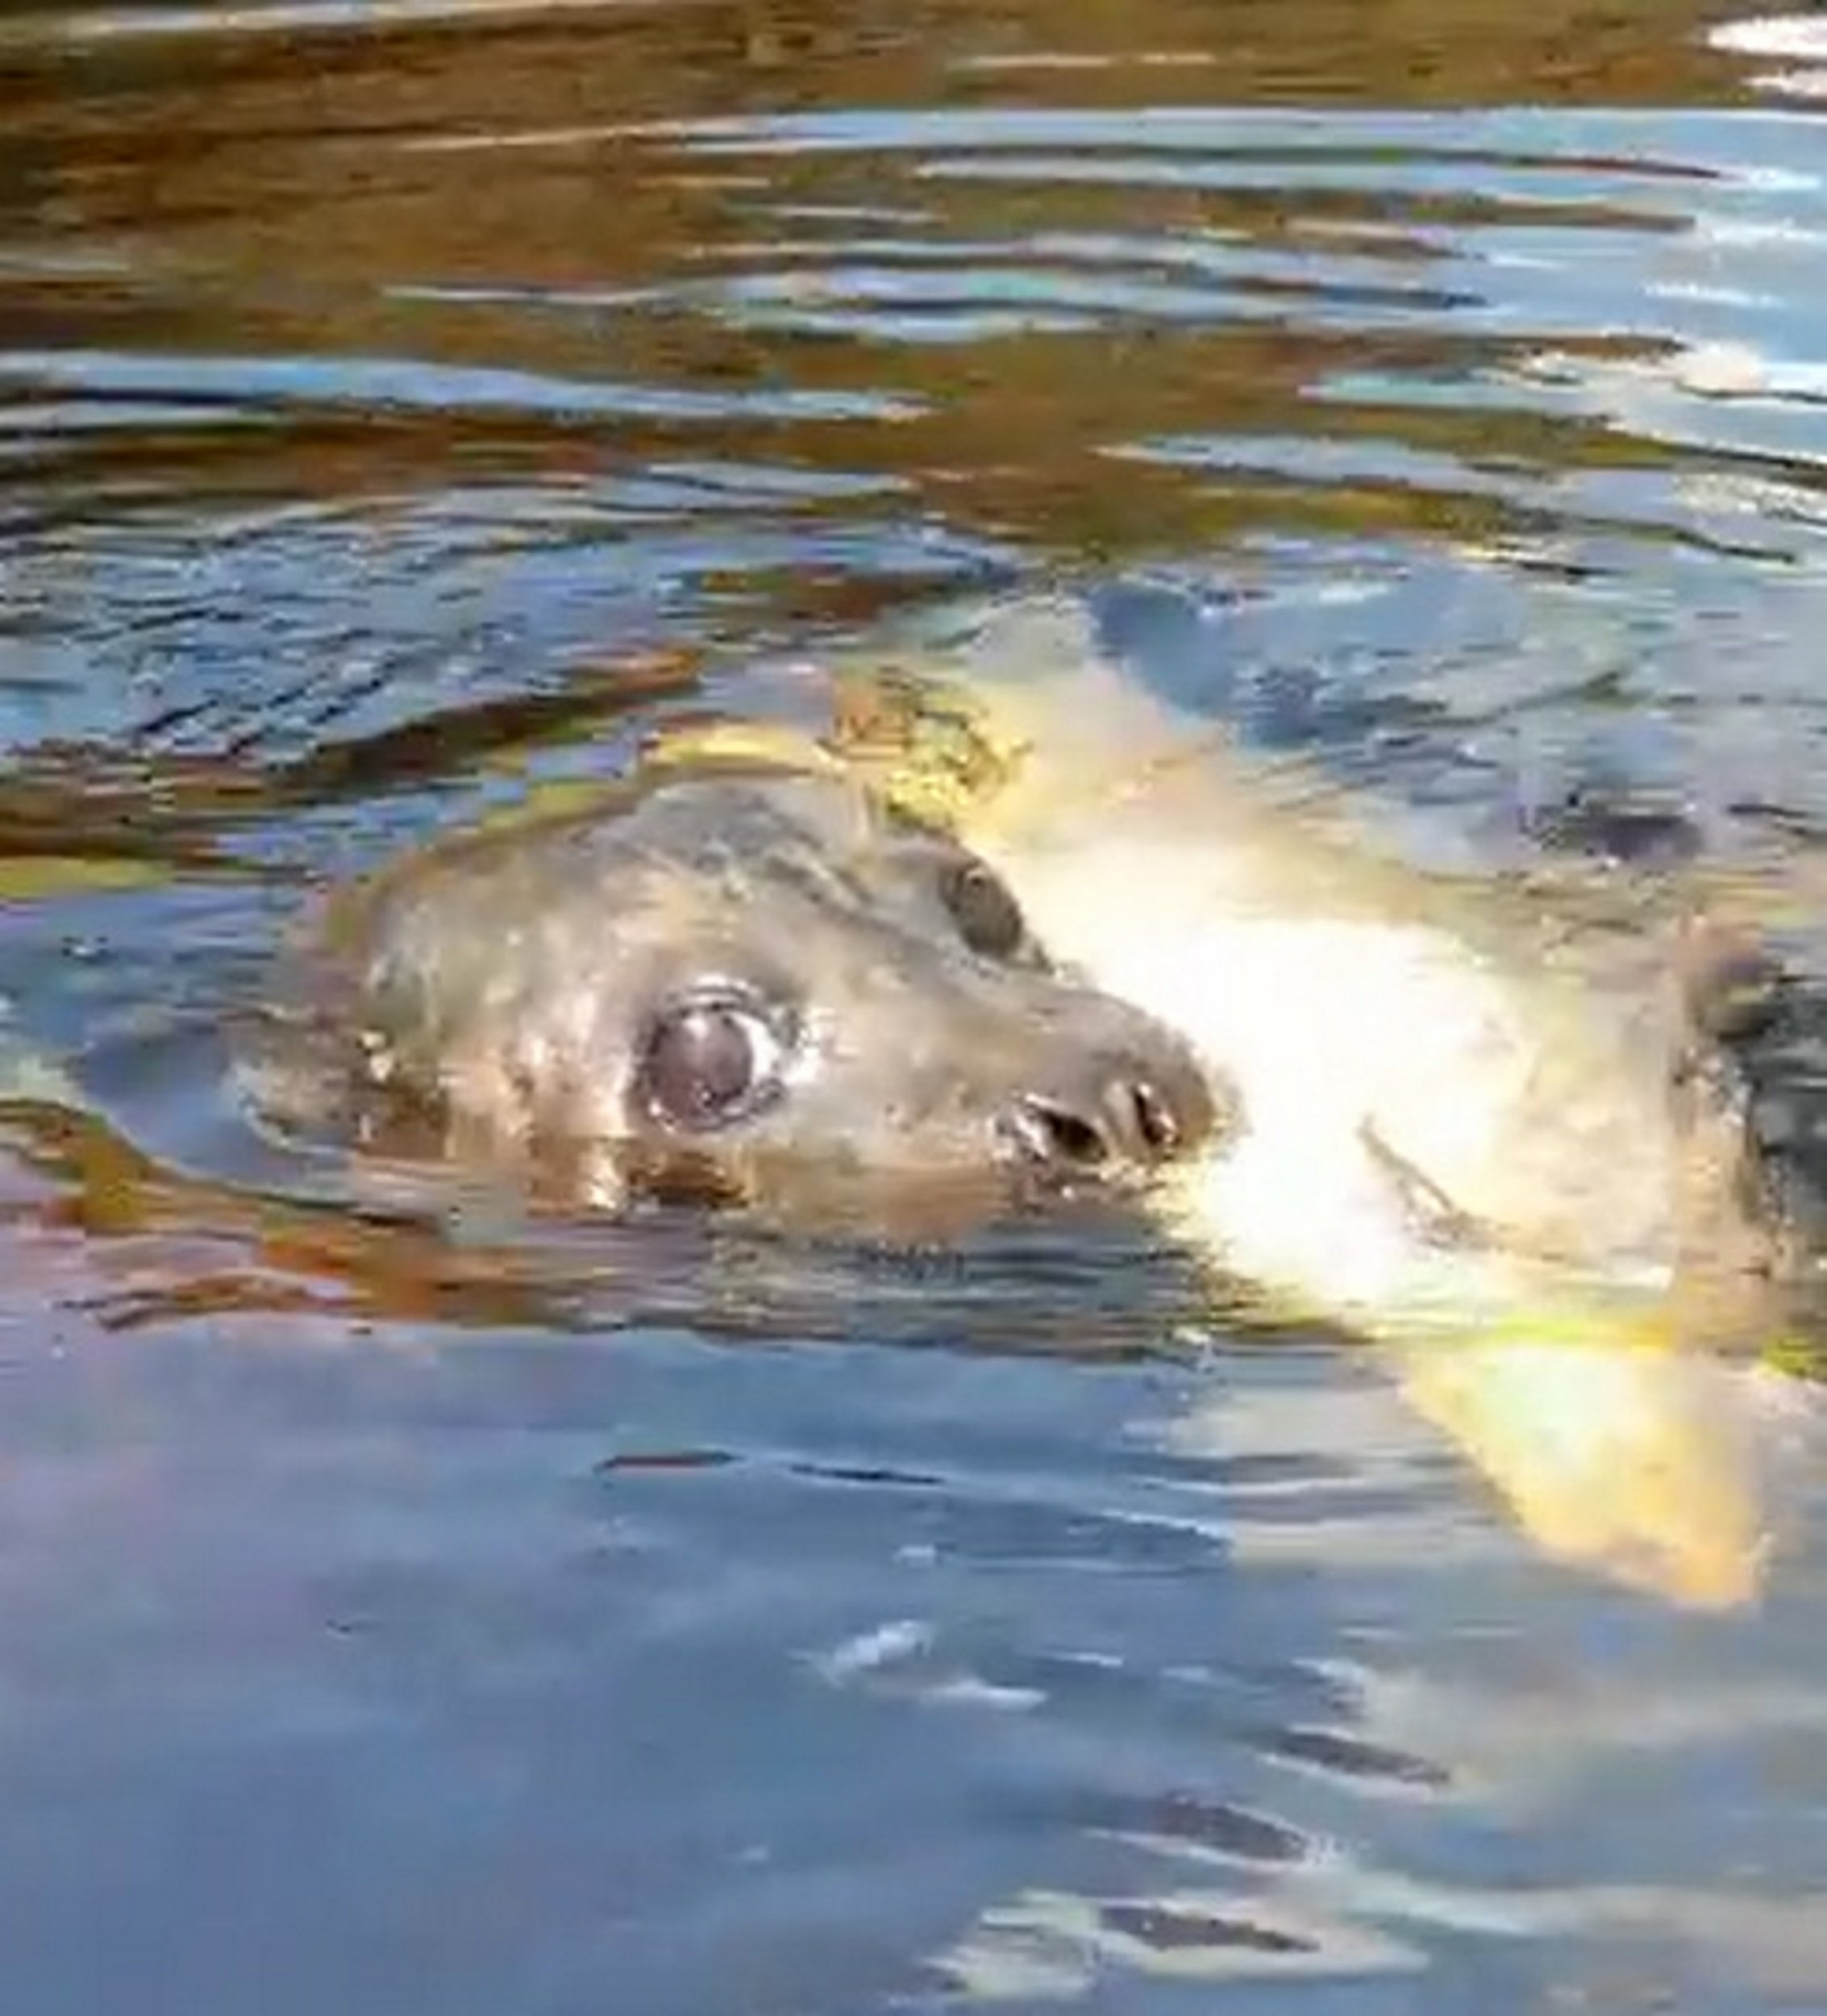 PIC FROM Kennedy News and Media (PICTURED: COMMON SEAL SPOTTED IN RIVER TEES, 26 MILES INLAND FROM NORTH-EAST COAST) A dad's recent canoe trip may be the luckiest yet - after he spotted a 'marathon' seal 26 MILES inland who had caught a fish that zoologists told him could be a new species. This lively seal was spotted enjoying a well-deserved meal after swimming the equivalent of a full marathon inland to the River Tees, outside Darlington, County Durham. Martin Landers, 51, was canoeing on the river earlier this month and estimates the animal had swam 26 miles from its usual habitat on the North-East coast. SEE KENNEDY NEWS COPY - 0161 697 4266